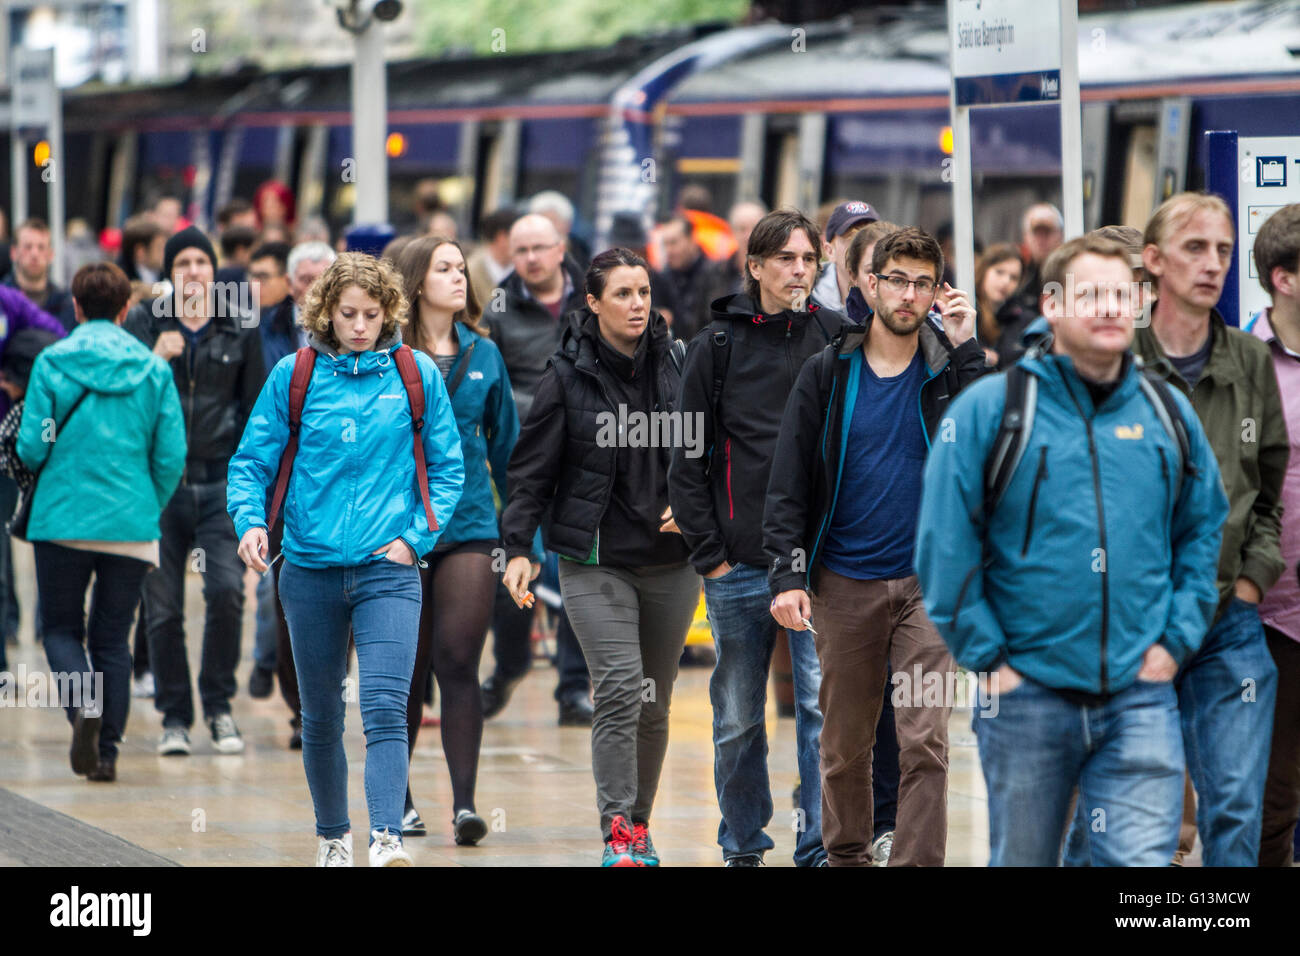 Bust train station and platform - Stock Image